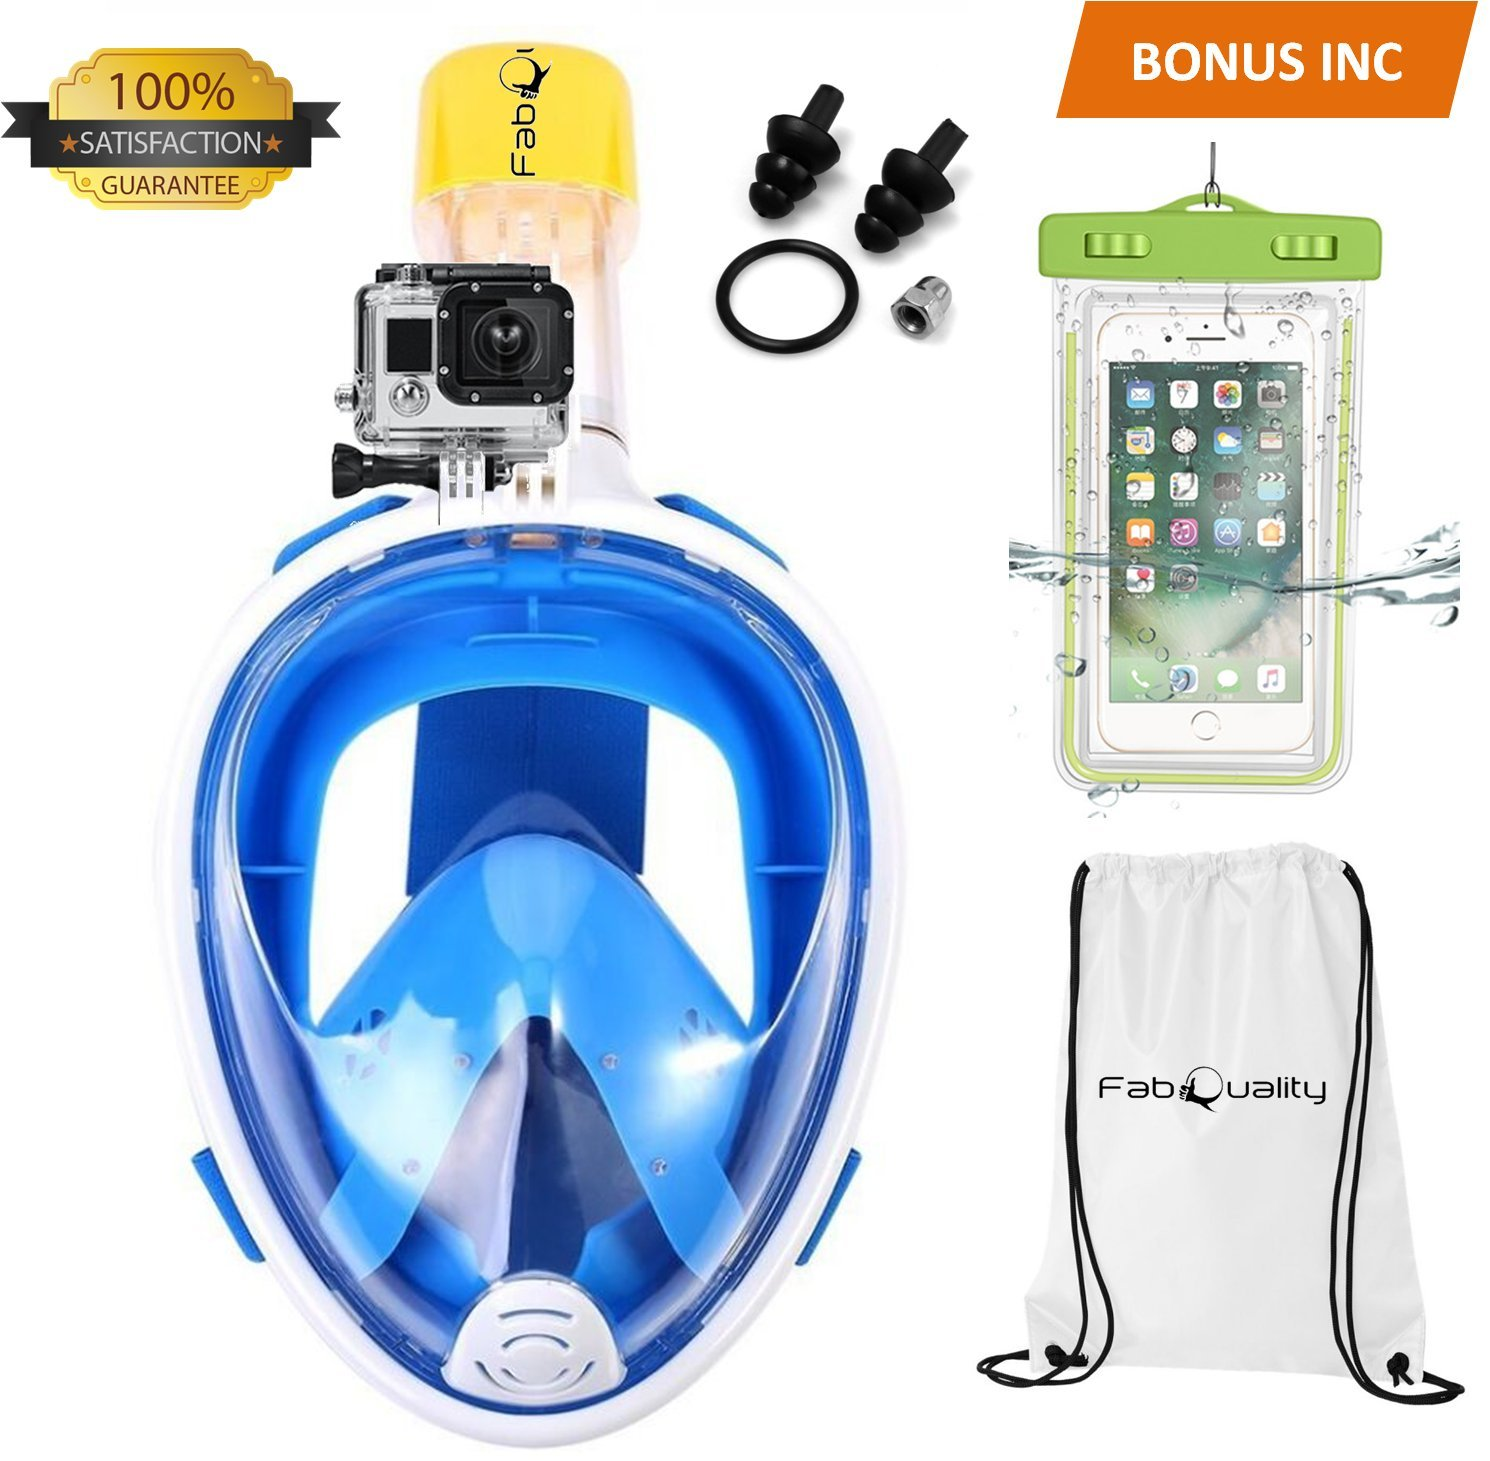 FabQuality Full Face Snorkel Mask, 180° Panoramic View, GoPro Compatible, Anti-Fog and Anti-Leak Design, for Adults and Kids Plus Waterproof Smartphone Case & Sports Gear Bag